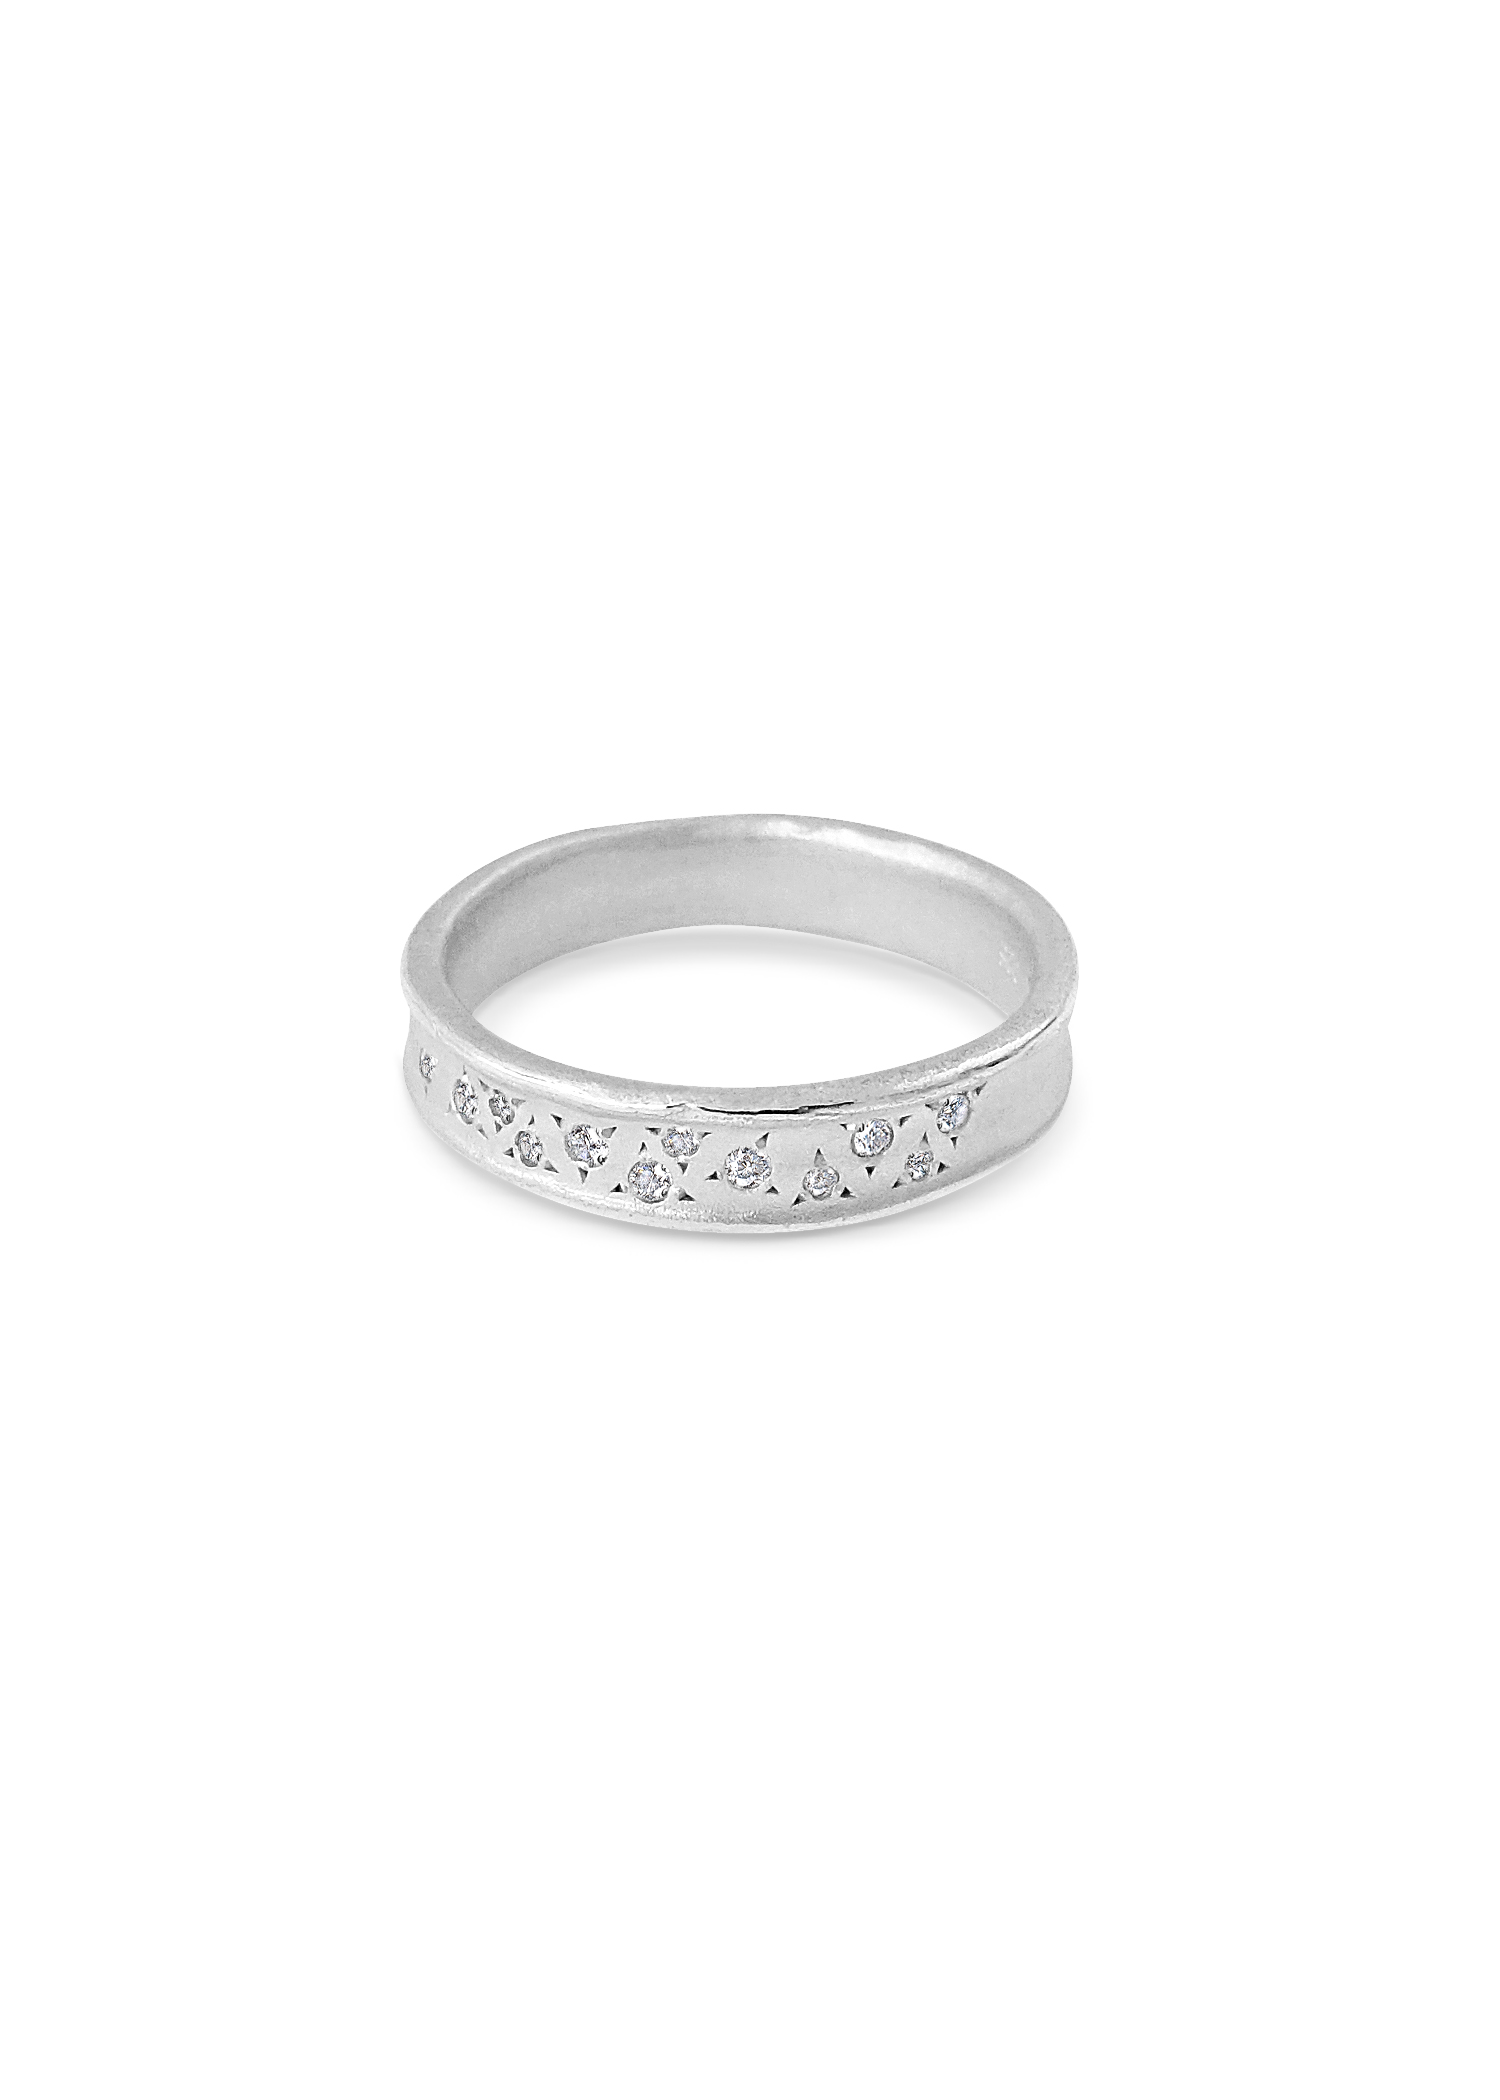 Misty Forest Dew Drops Ring- Silver